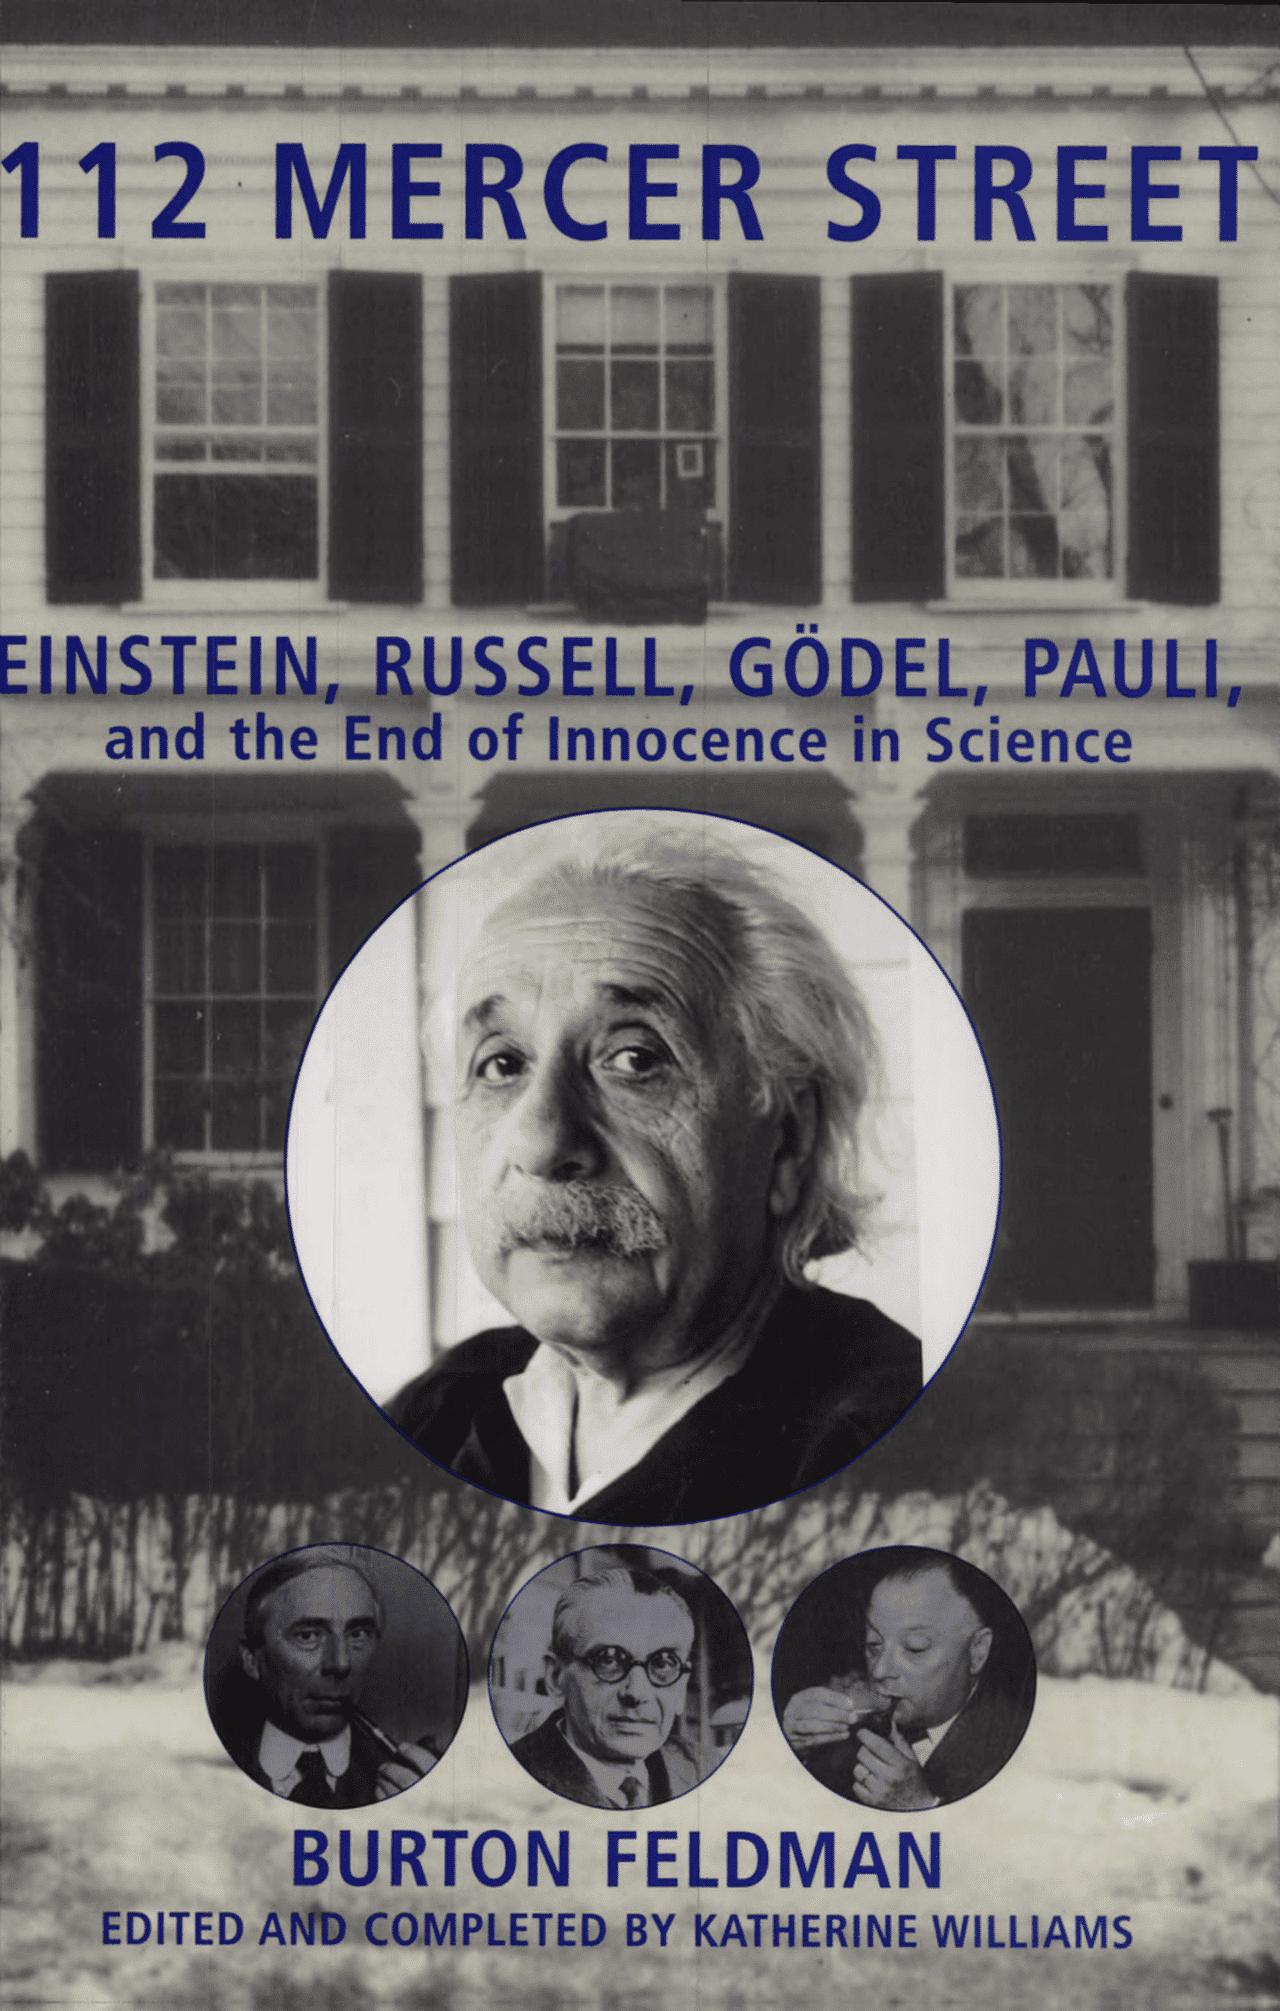 112 Mercer Street Einstein Russell Gödel Pauli and the End of Innocence in Science - 112 Mercer Street: Einstein, Russell Gödel, Pauli, and the End of Innocence in Science